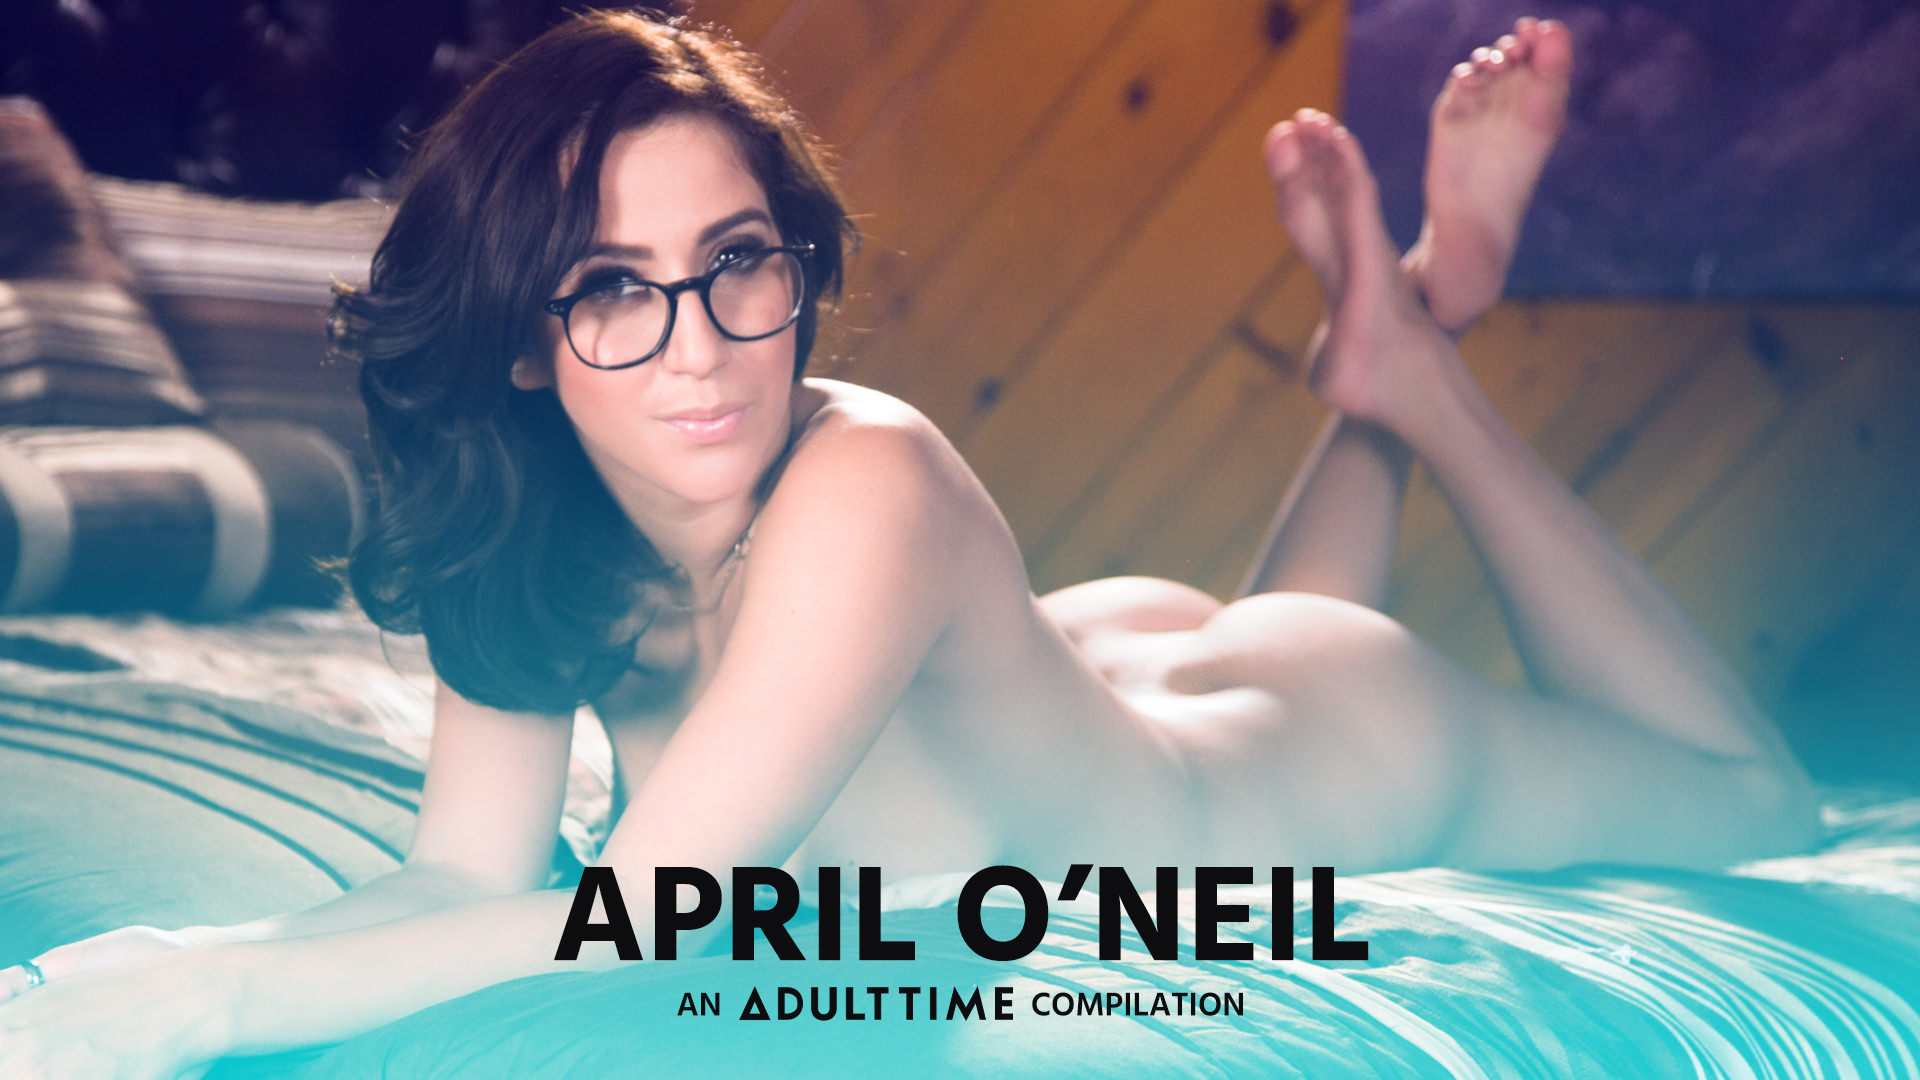 April O'Neil - An Adult Time Compilation - April ONeil 1